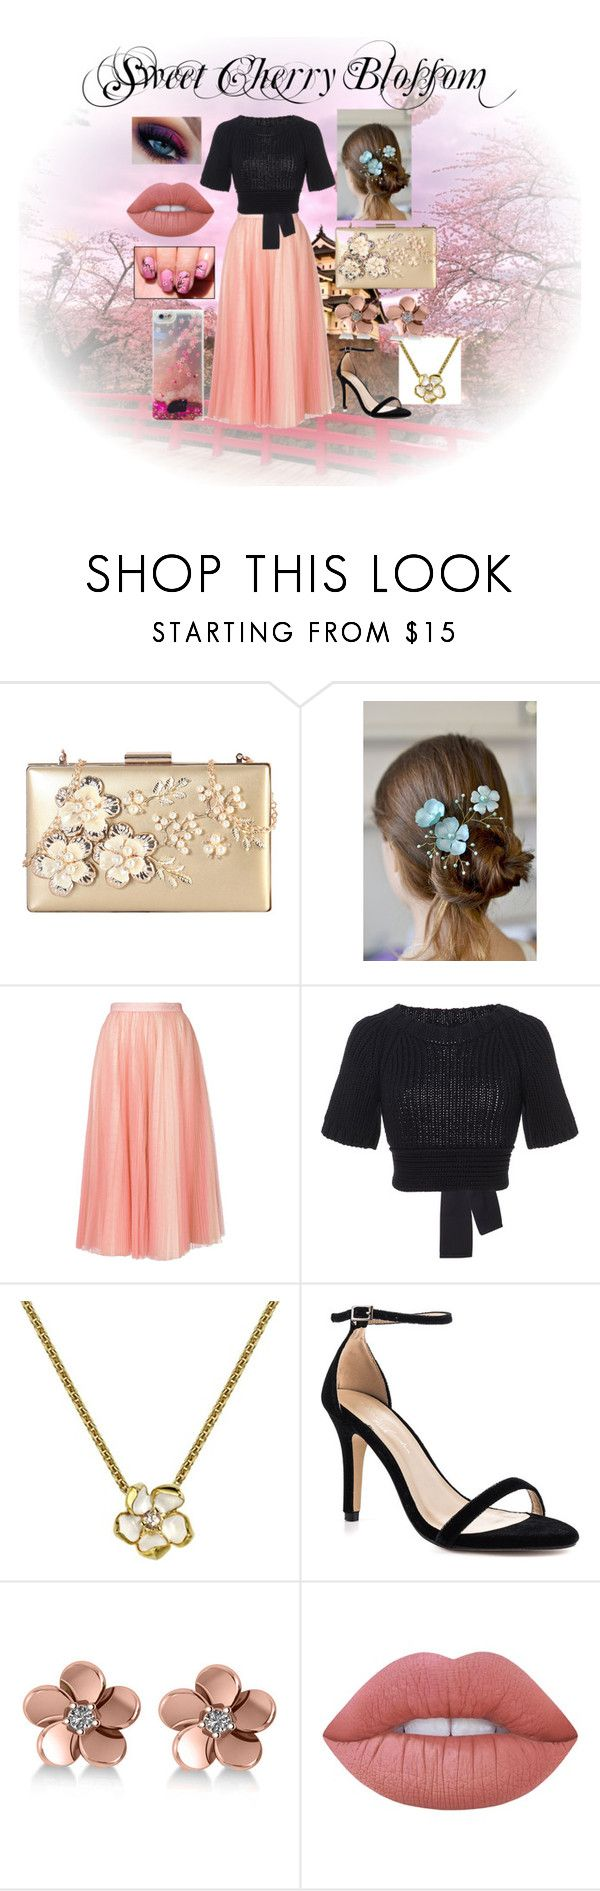 """Sweet Cherry Blossom"" by kristasmiles ❤ liked on Polyvore featuring Rimen & Co., Philosophy di Lorenzo Serafini, RED Valentino, Shaun Leane, Pink Paradox London, Allurez and Lime Crime"